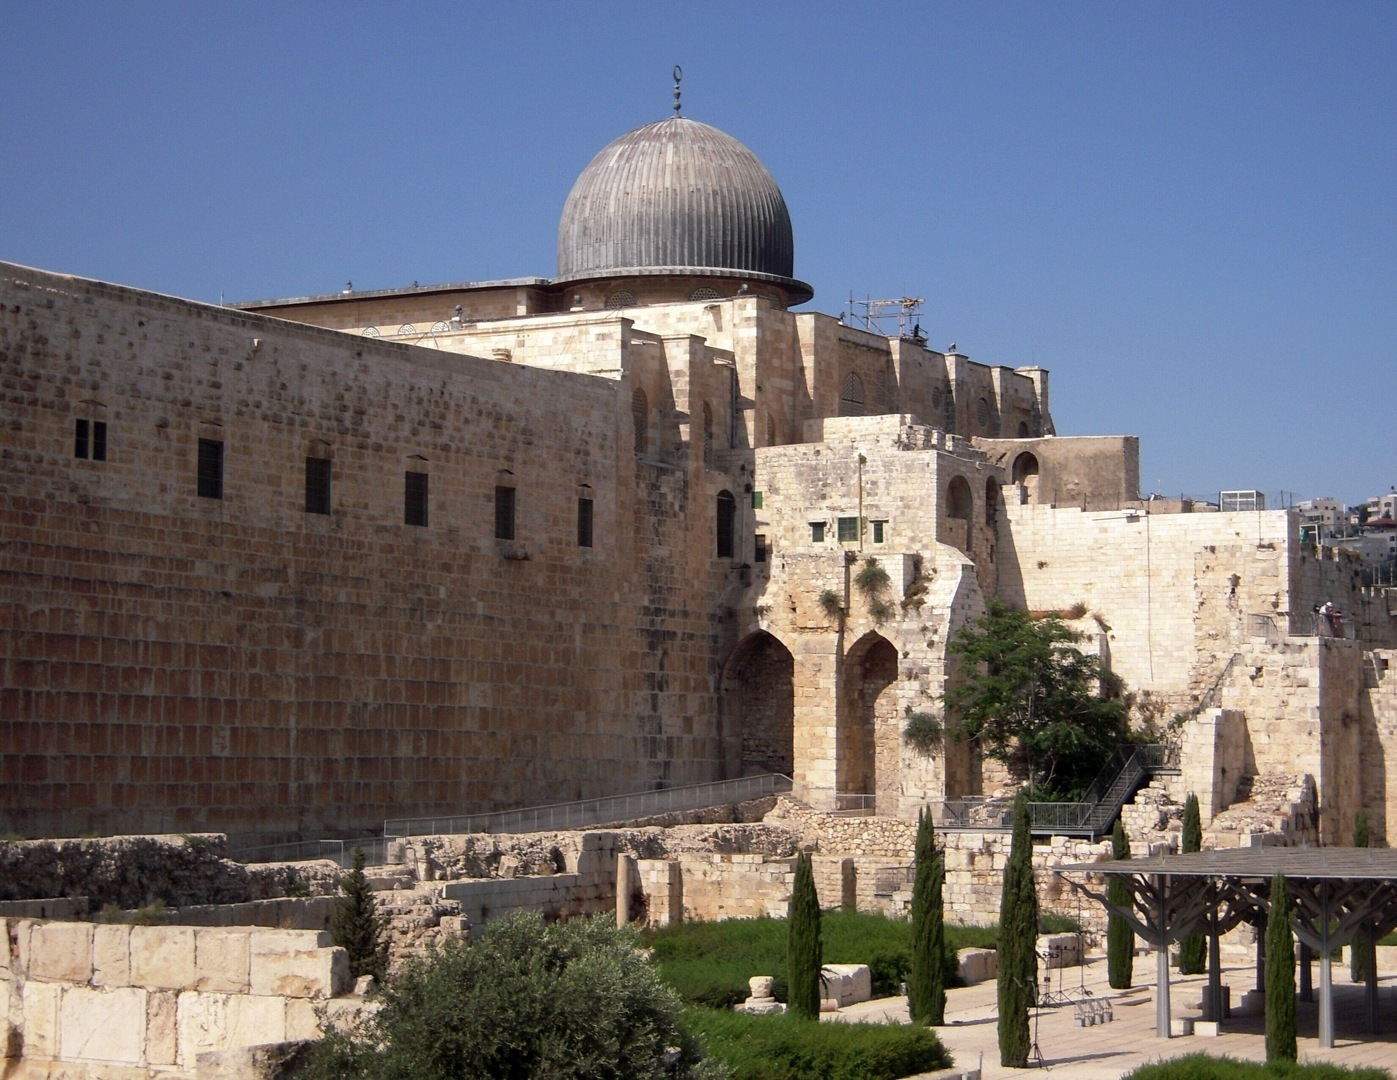 al aqsa mosque hd wallpapers 2012 articles about islam